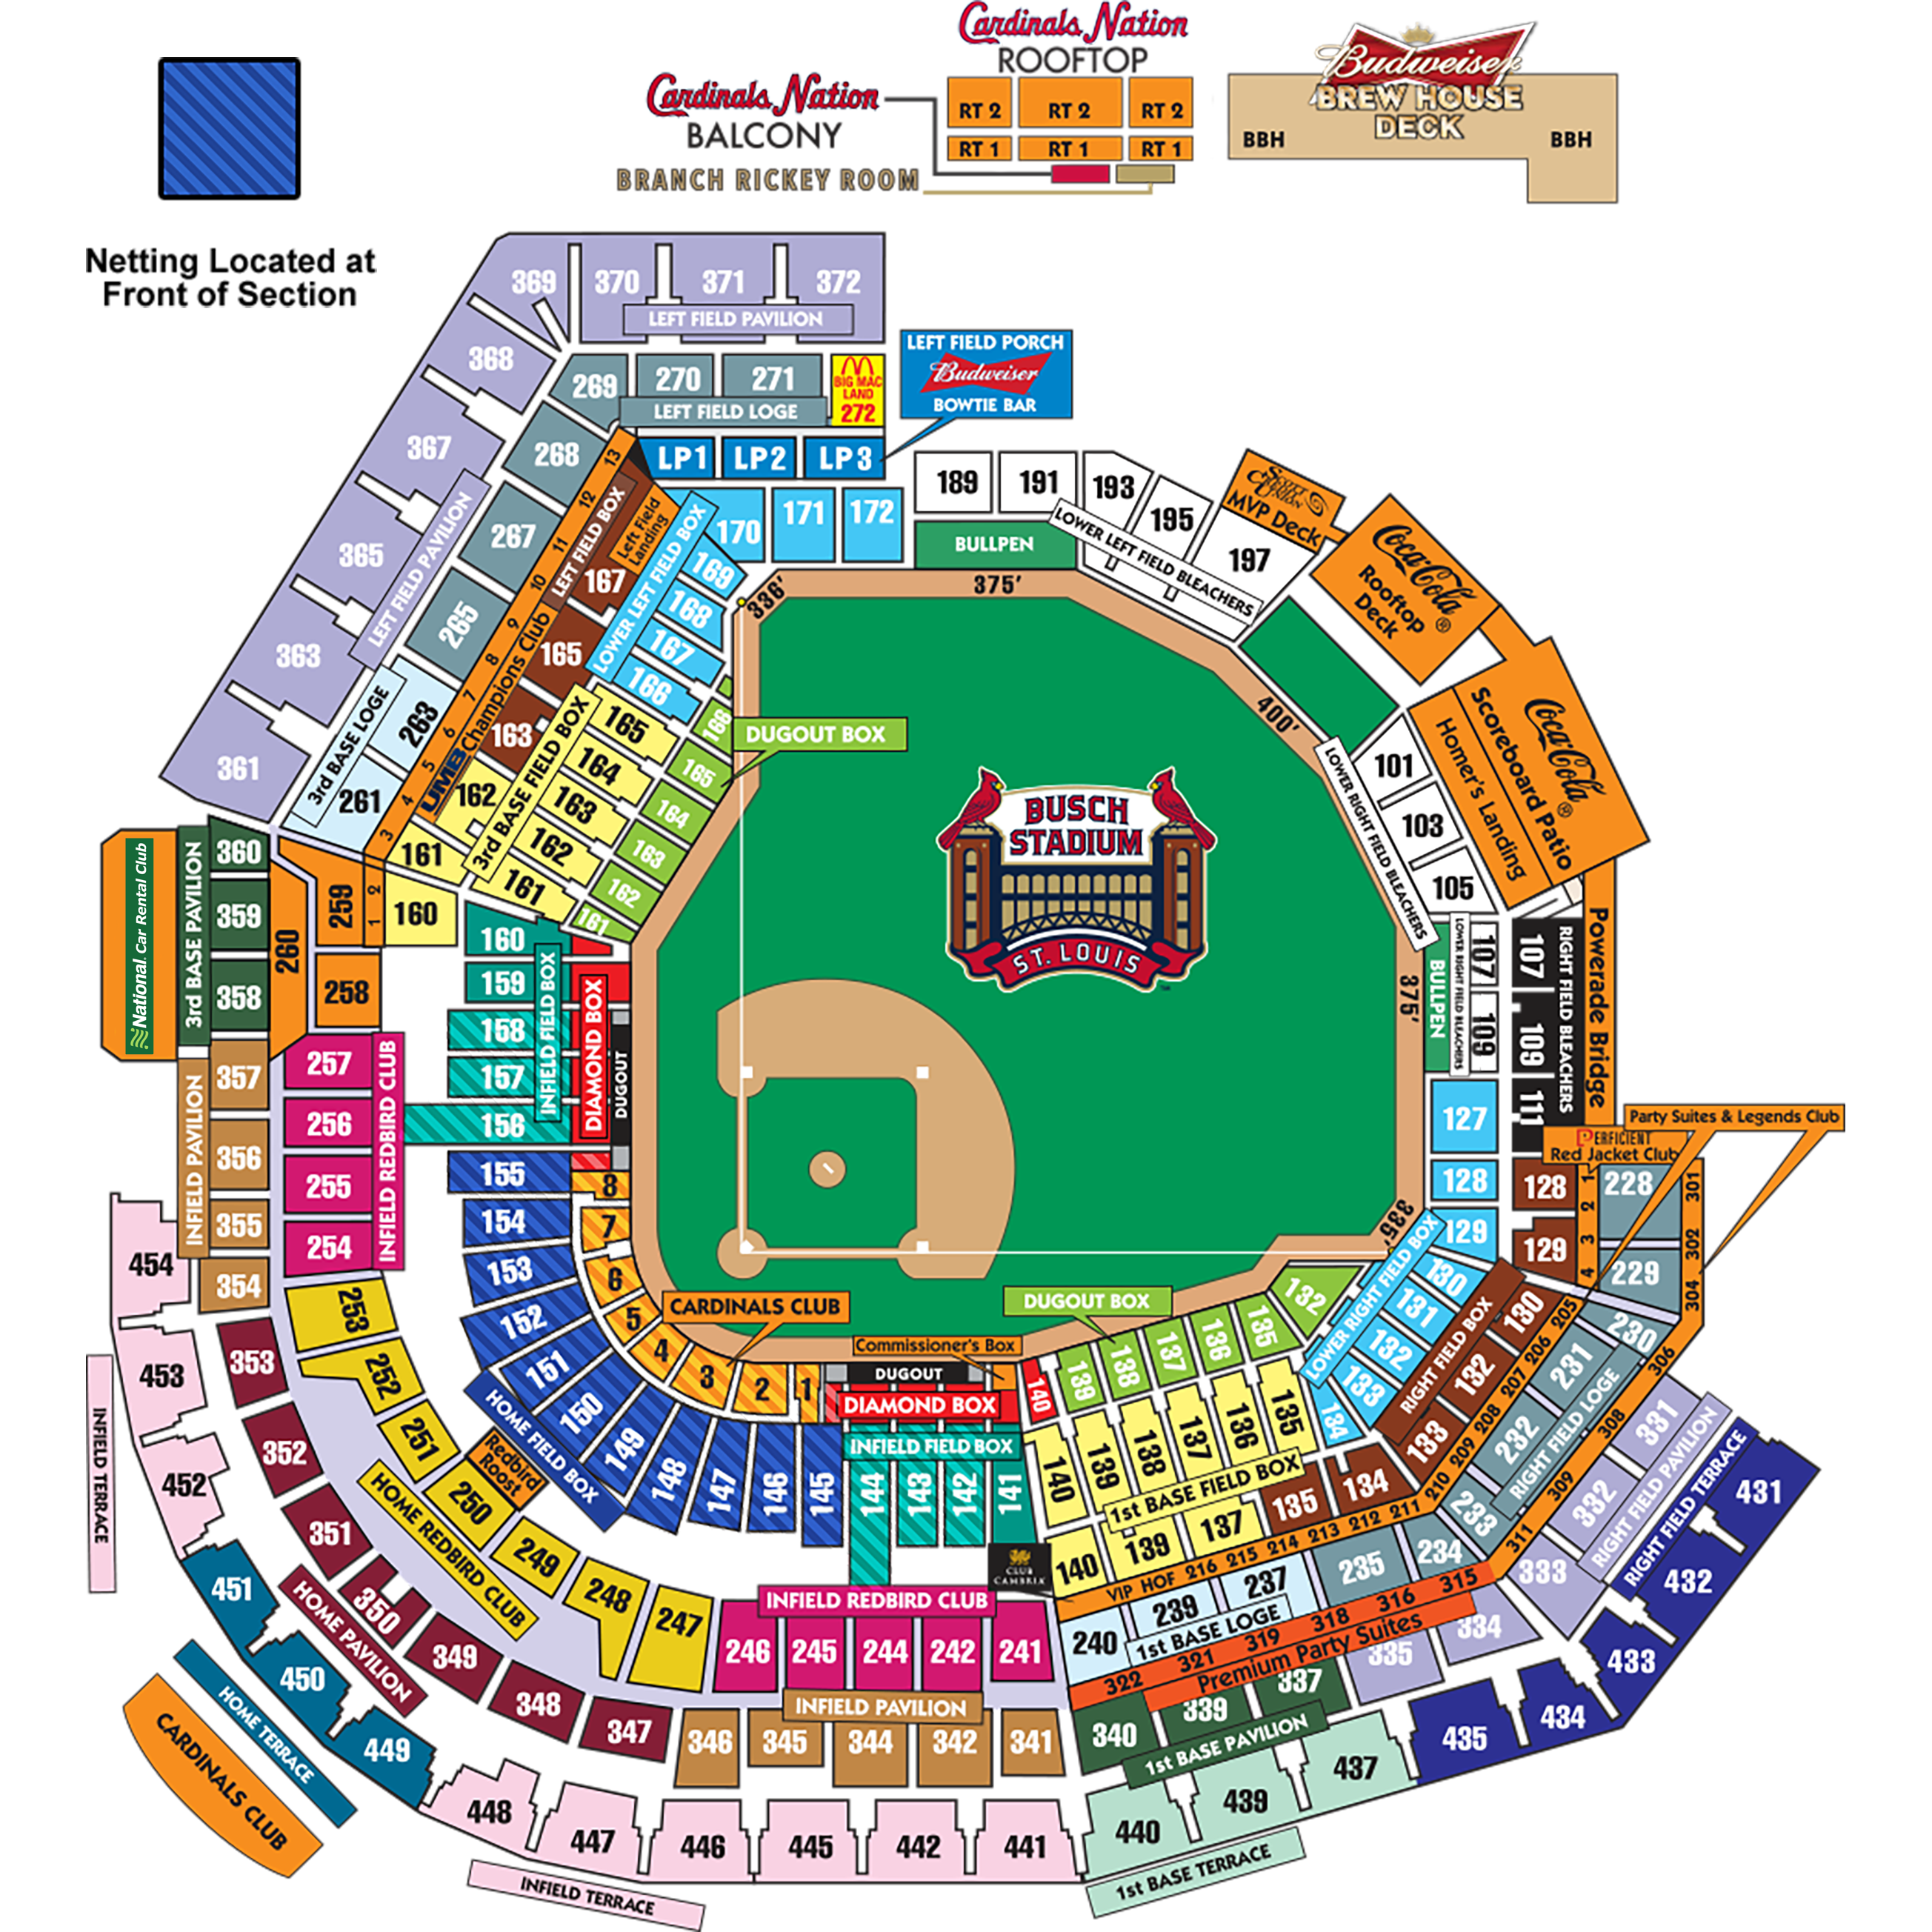 Cardinals Seating Map Busch Stadium Netting | St. Louis Cardinals Cardinals Seating Map